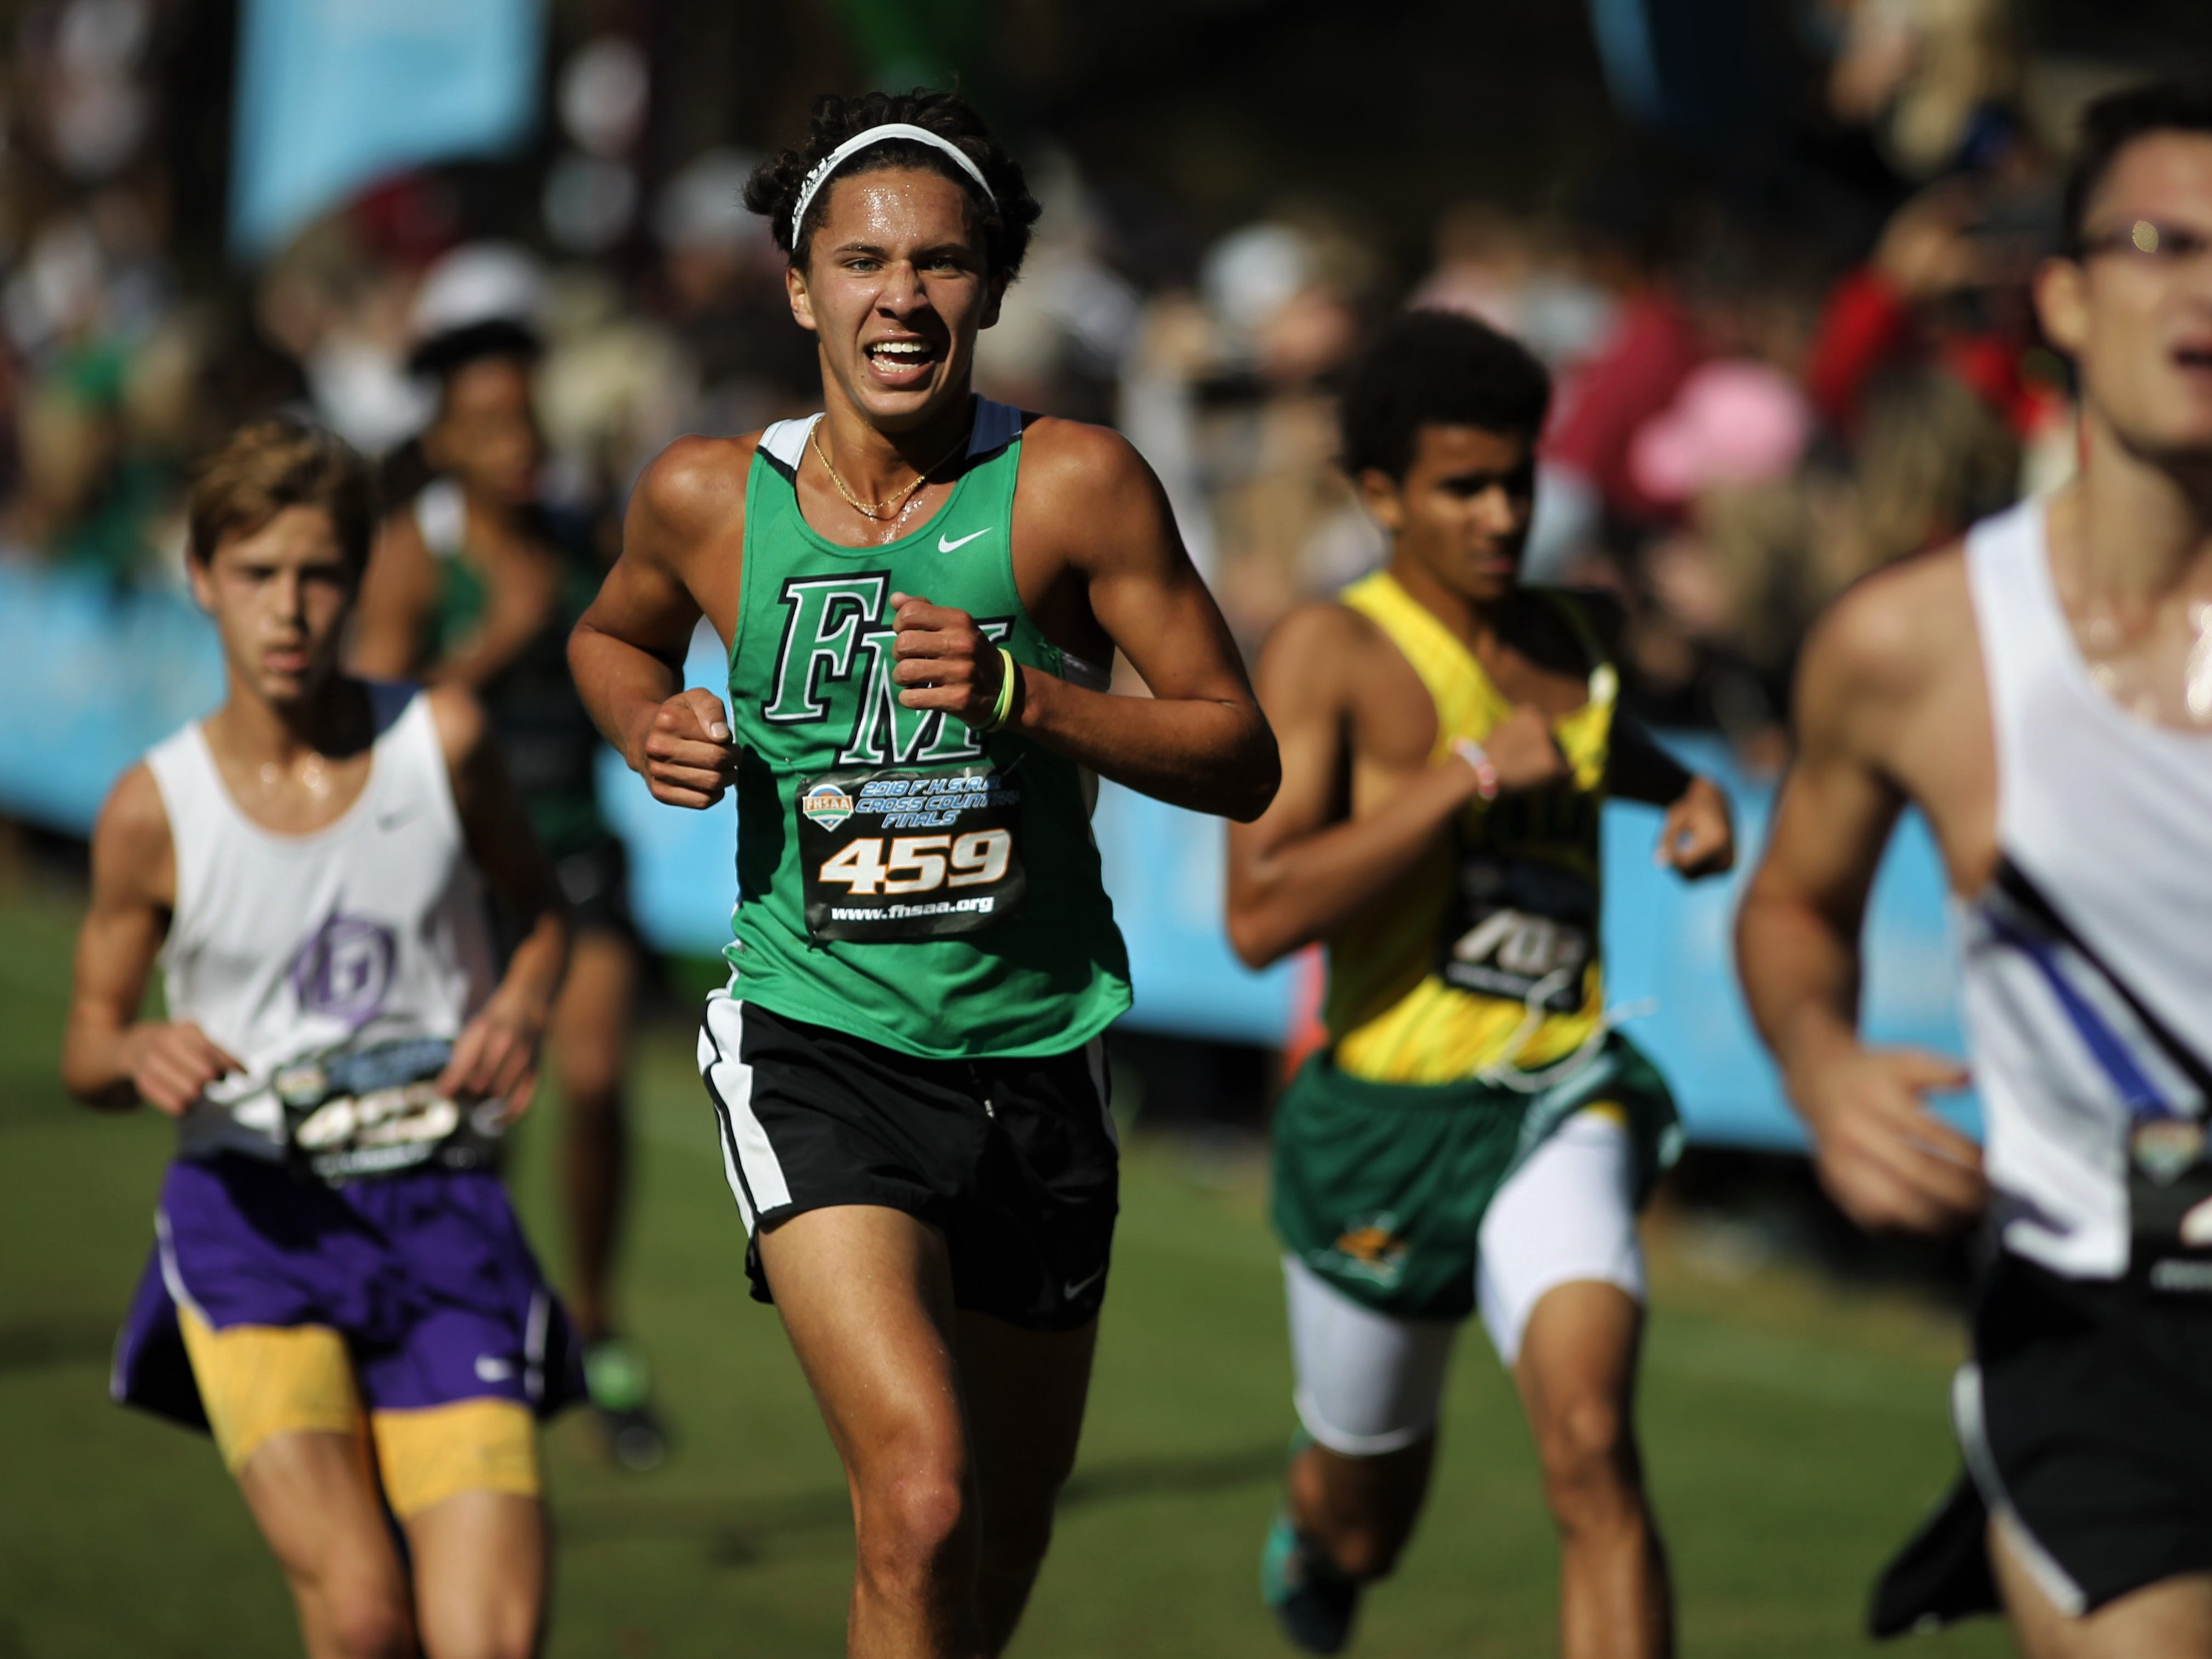 Fort Myers' Jonathan Edwards races in the FHSAA Cross Country State Championships at Apalachee Regional Park in Tallahassee, Saturday, Nov. 11, 2018.